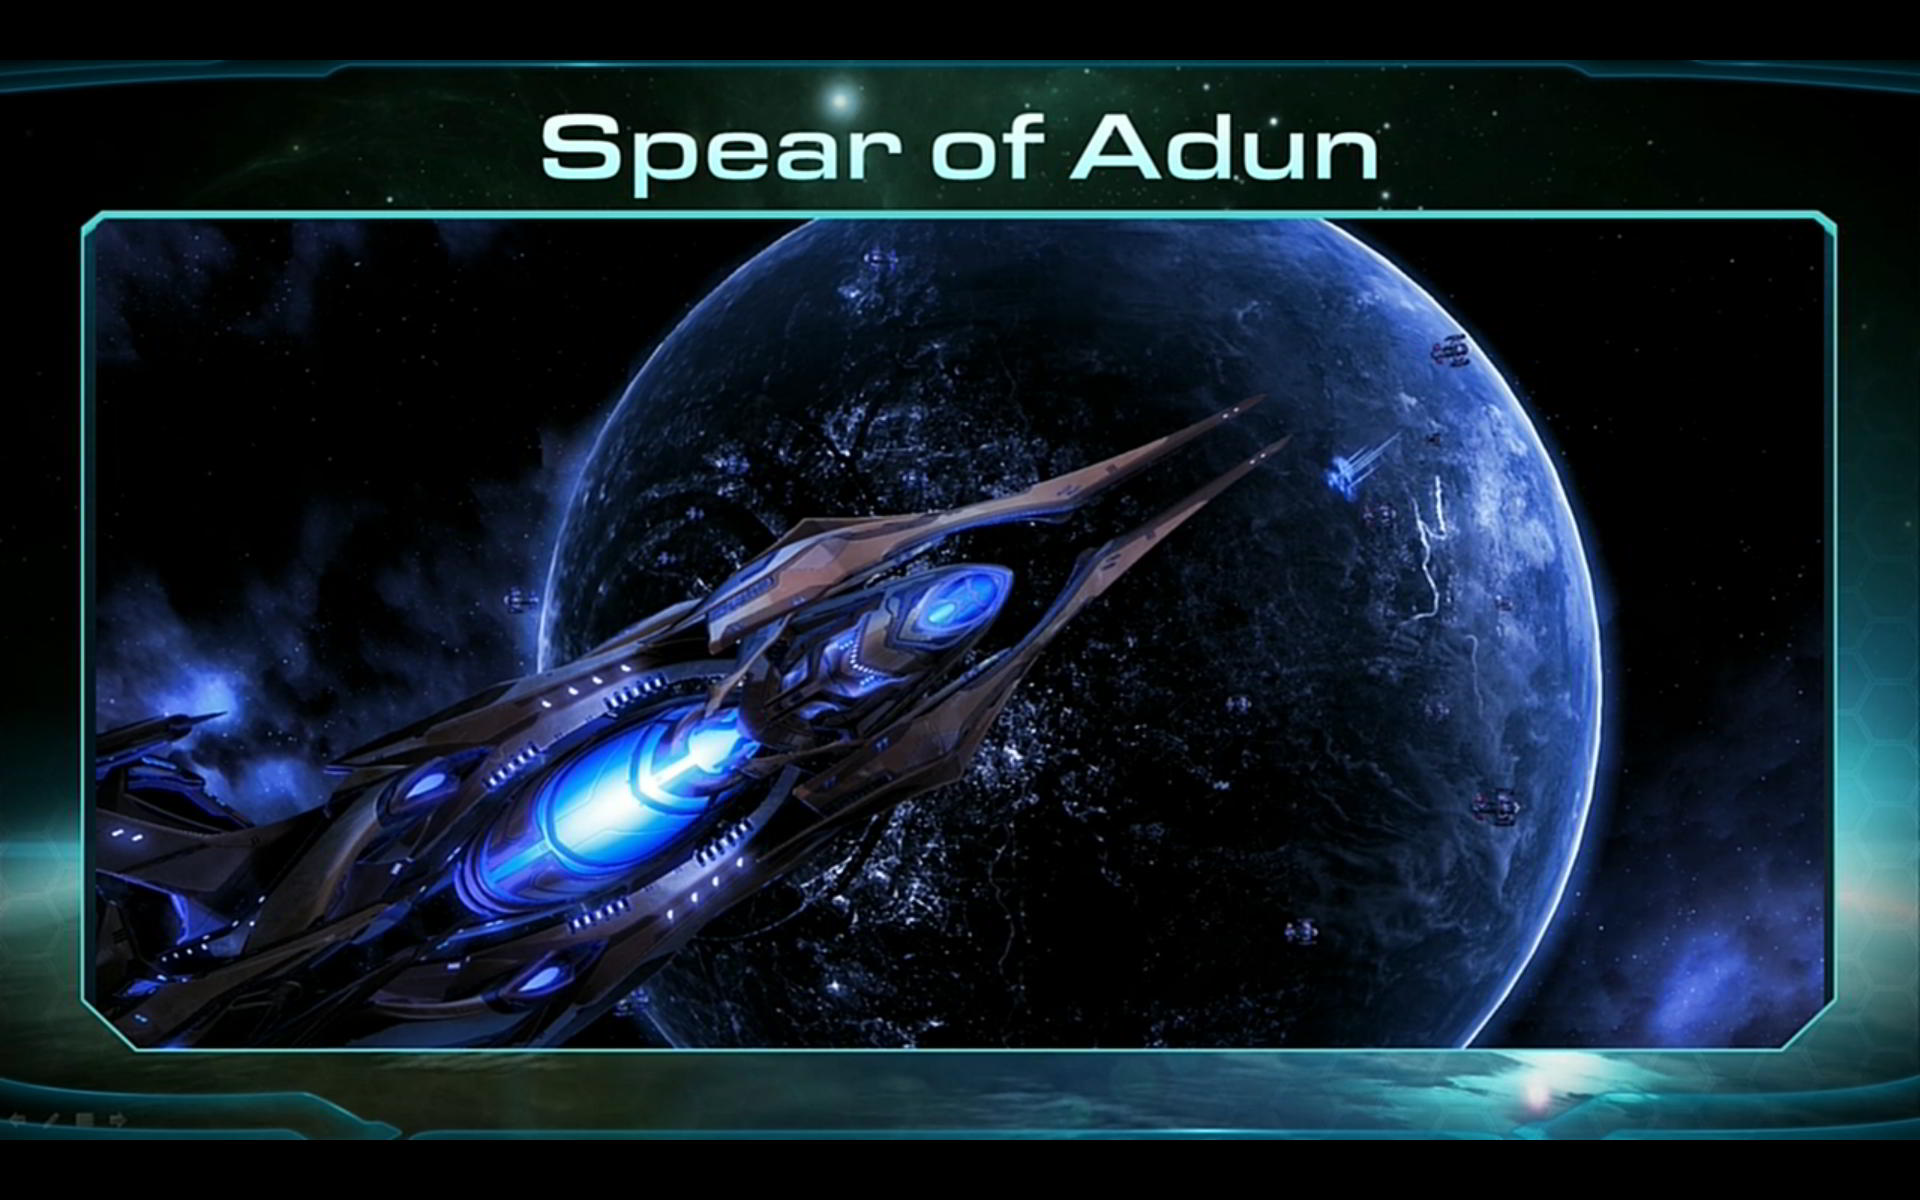 spear of adun